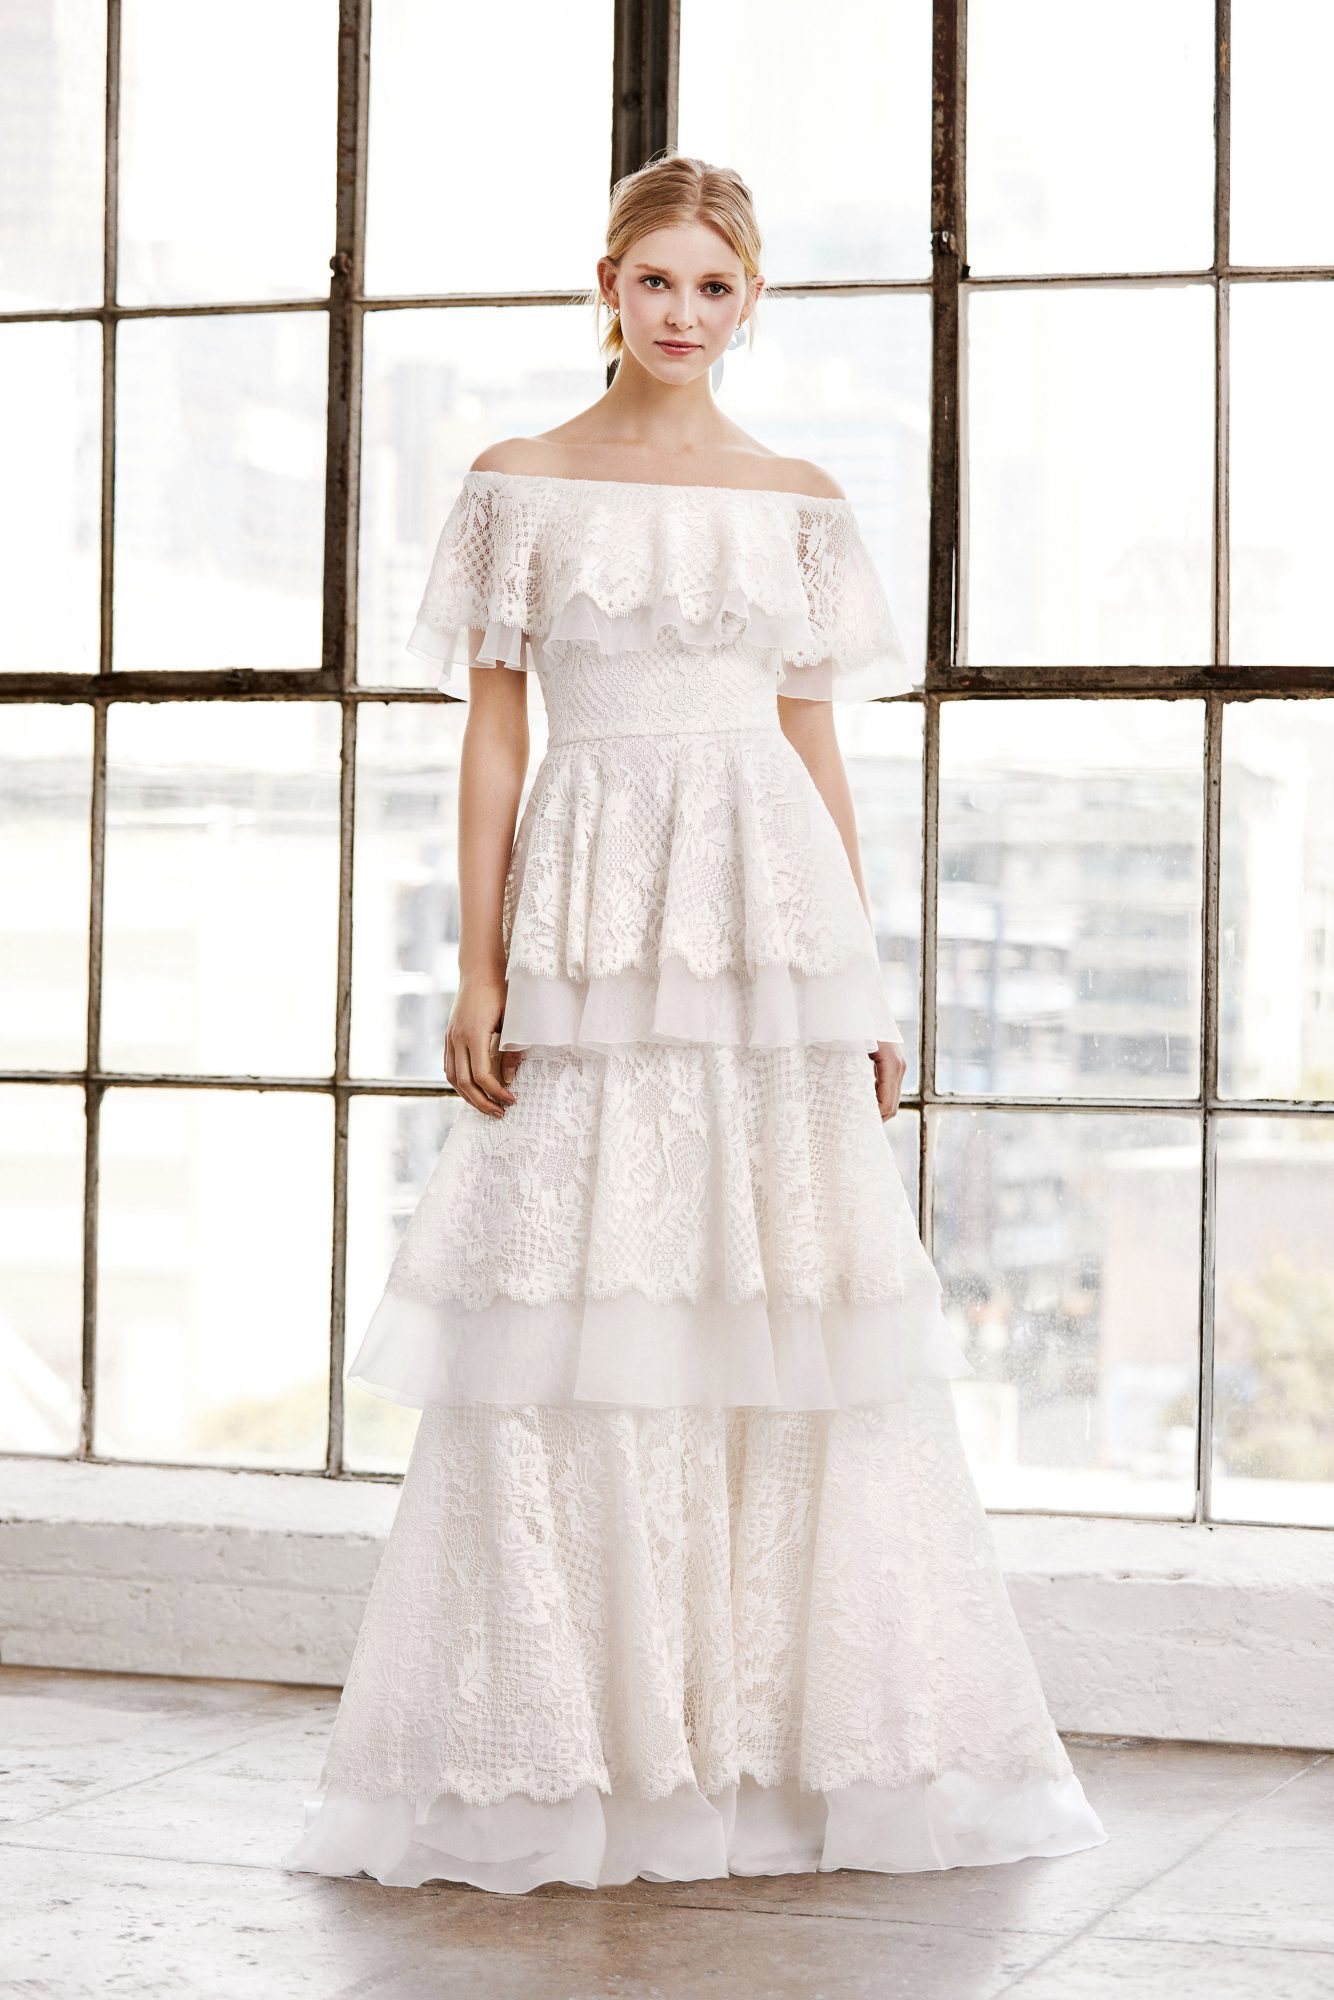 tadashi shoji wedding dress spring 2019 off the shoulder lace tiers